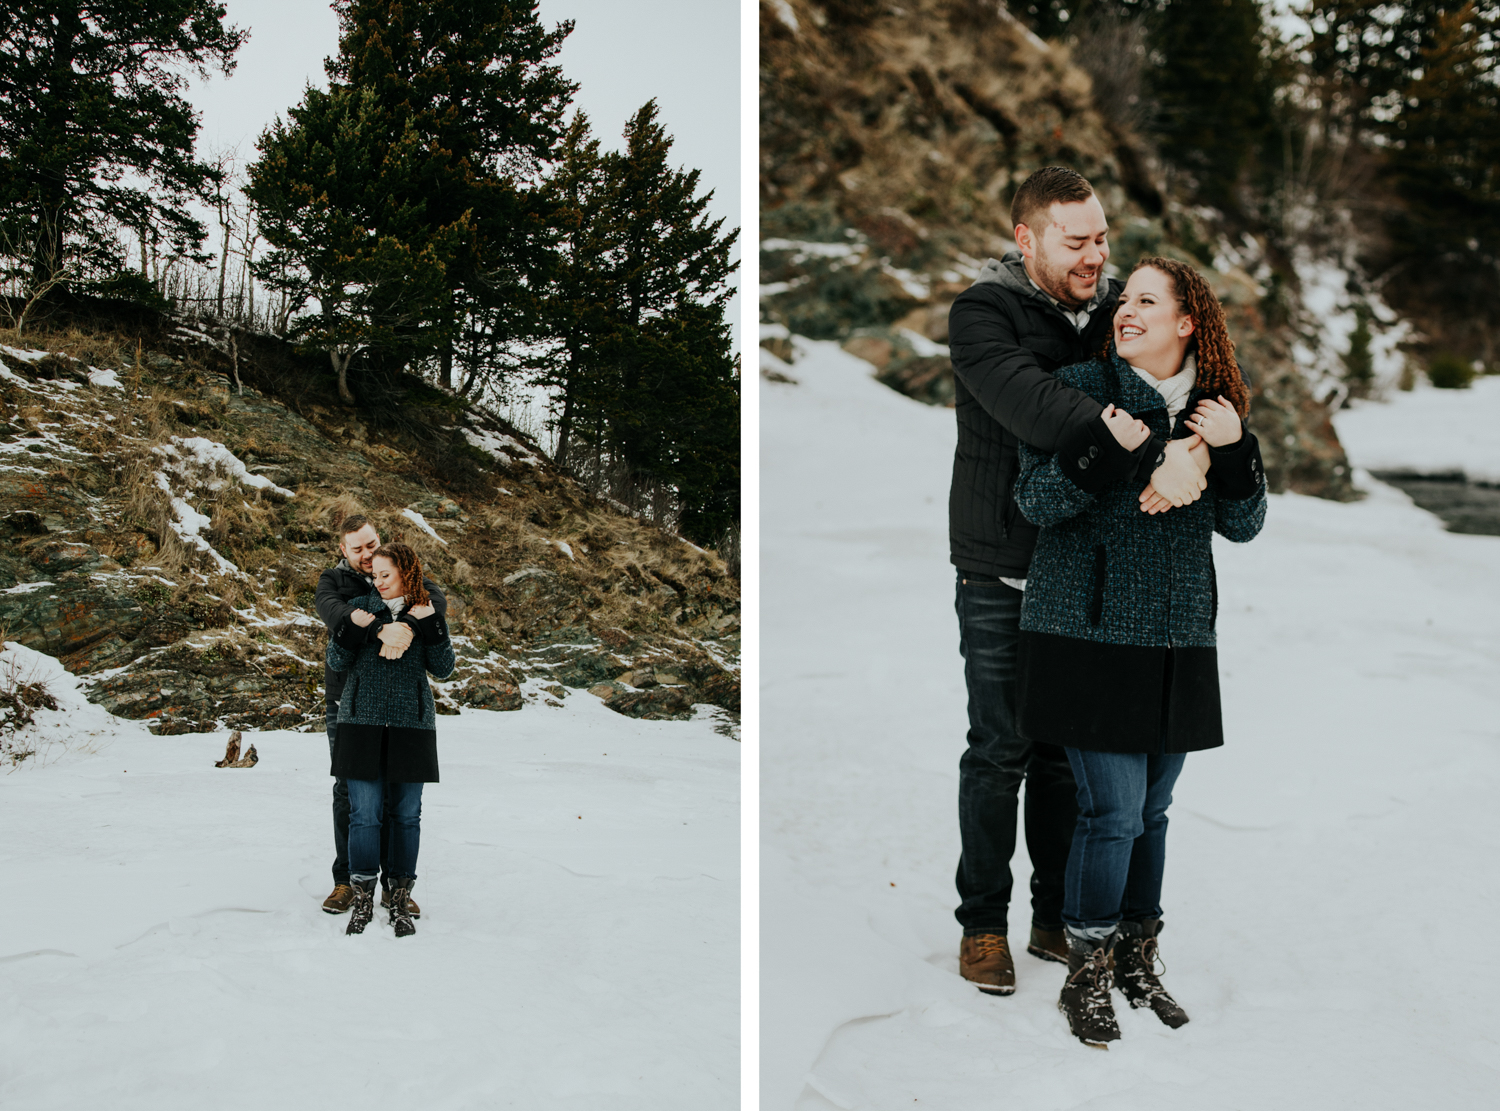 waterton-photographer-love-and-be-loved-photography-trent-danielle-engagement-winter-picture-image-photo-60.jpg